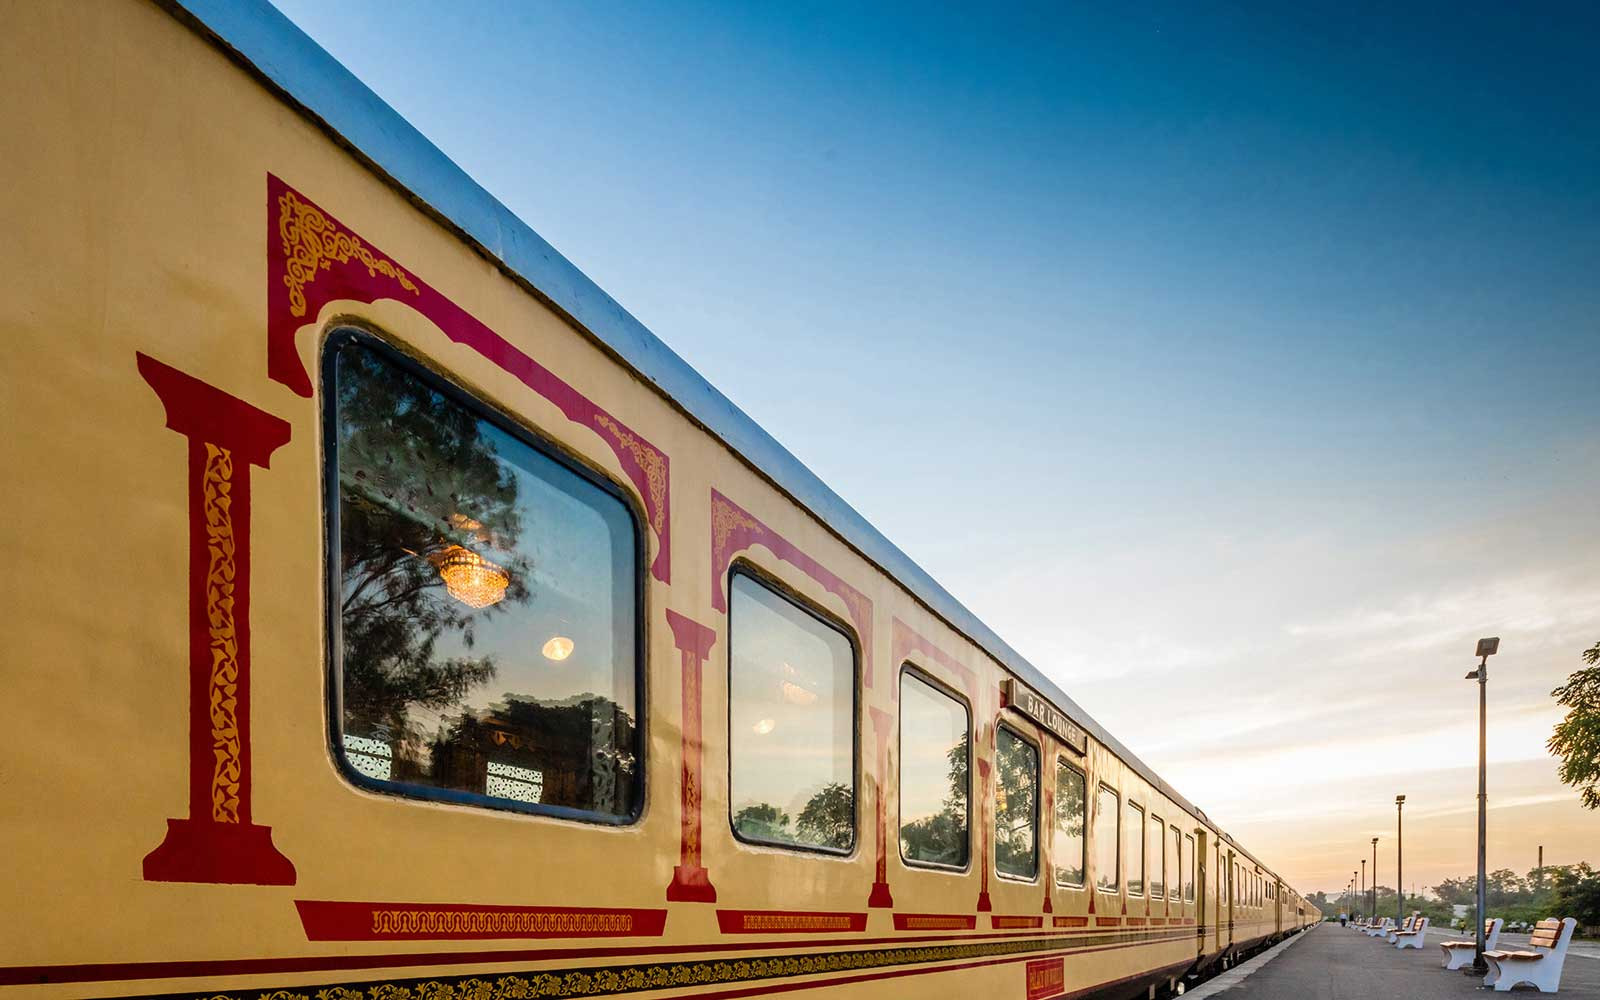 Exterior of the Palace on Wheels luxury train in India, painted in its signature cream and red